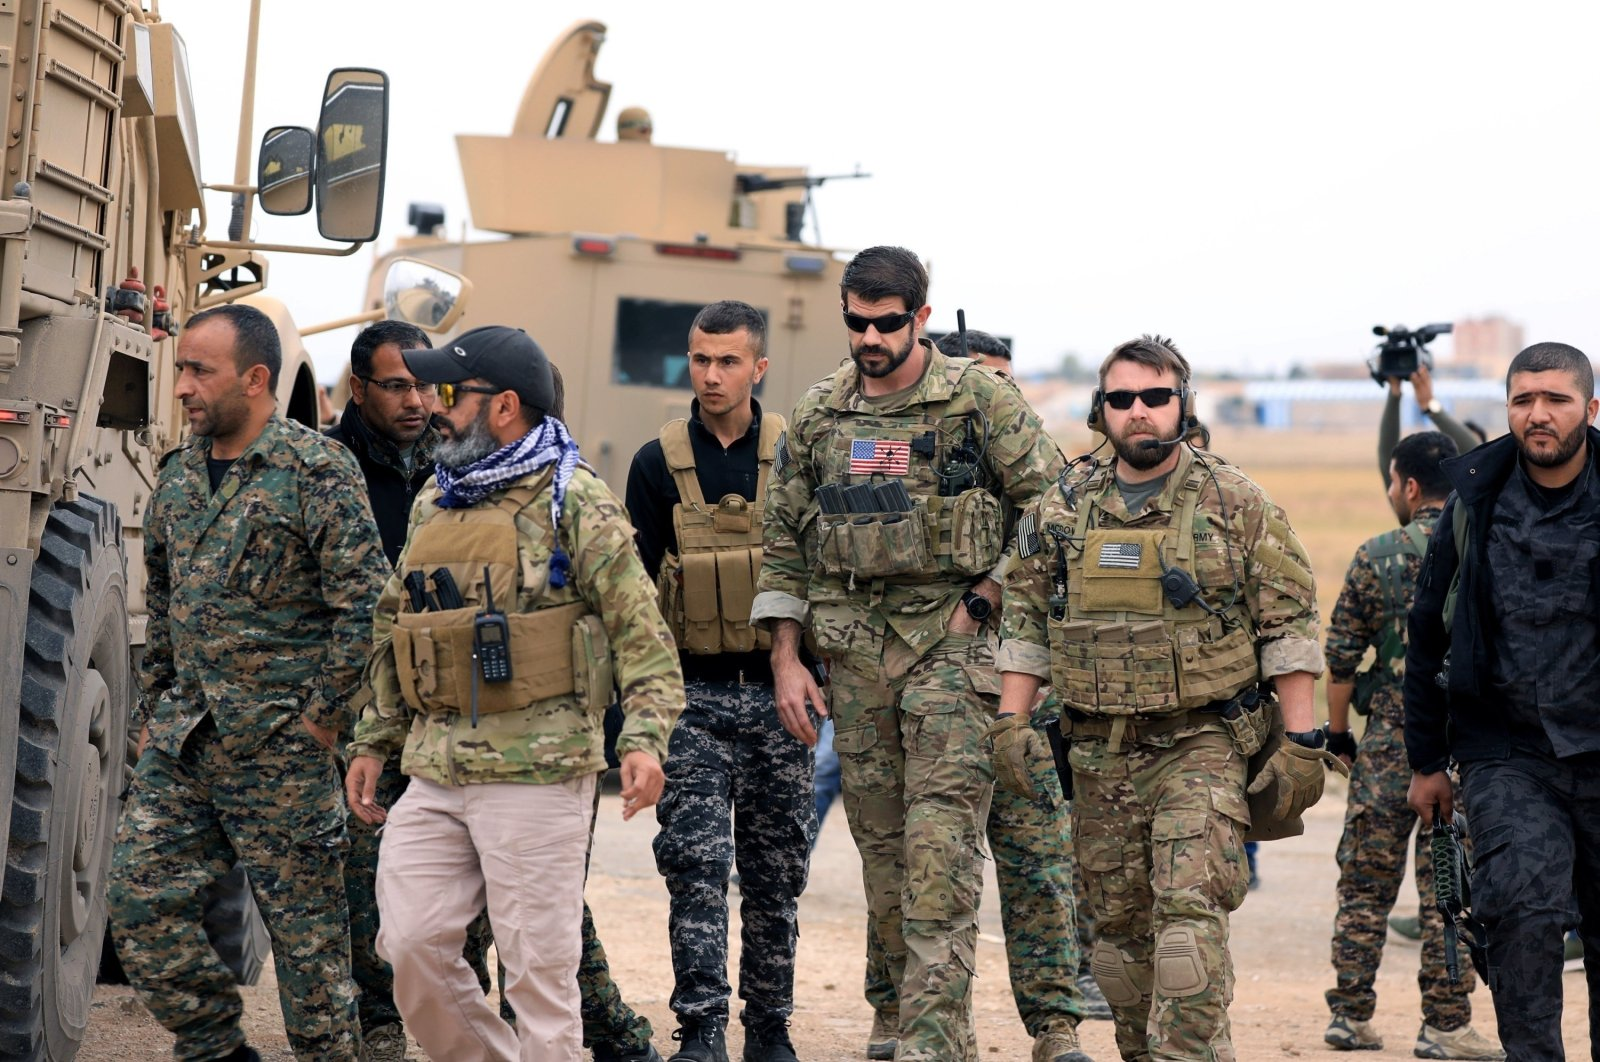 YPG terrorists and U.S. troops are seen together during a joint patrol near the Turkish border in Hassakeh, northeastern Syria, Nov. 4, 2018. (Reuters Photo)